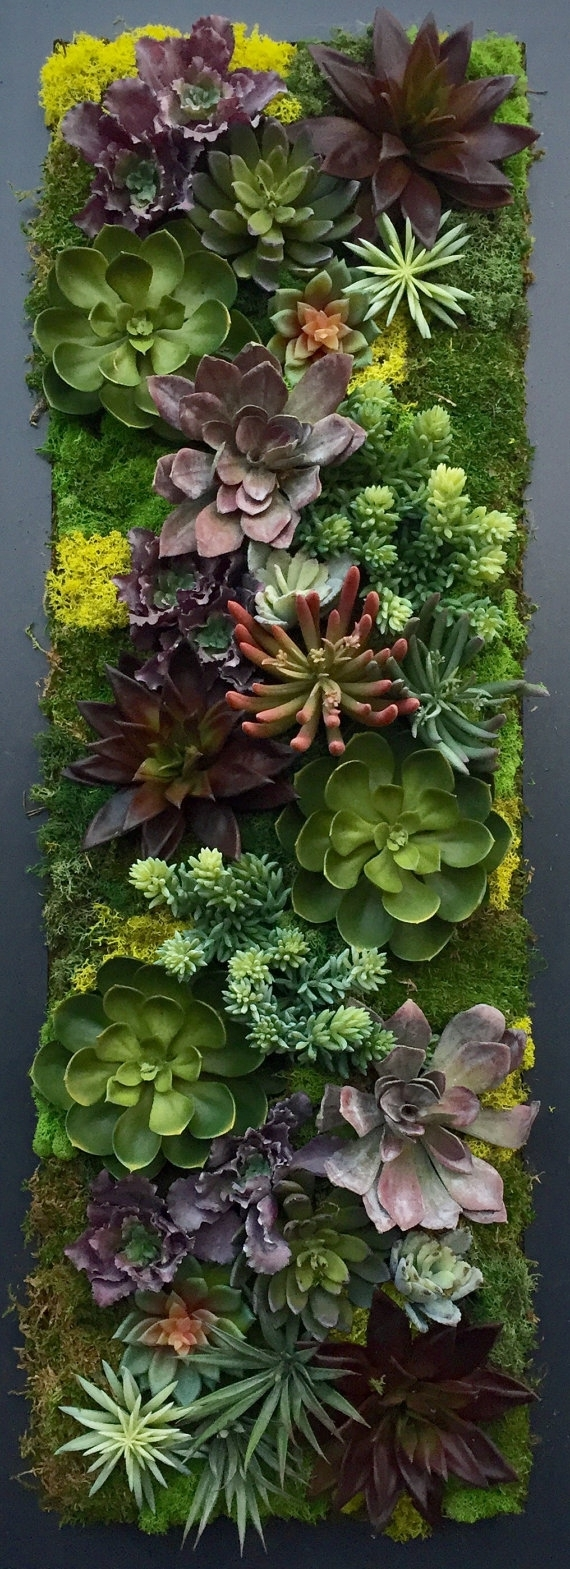 Custom Made Succulent Wall Art | ????????? | Pinterest | Succulent With Current Succulent Wall Art (View 3 of 20)